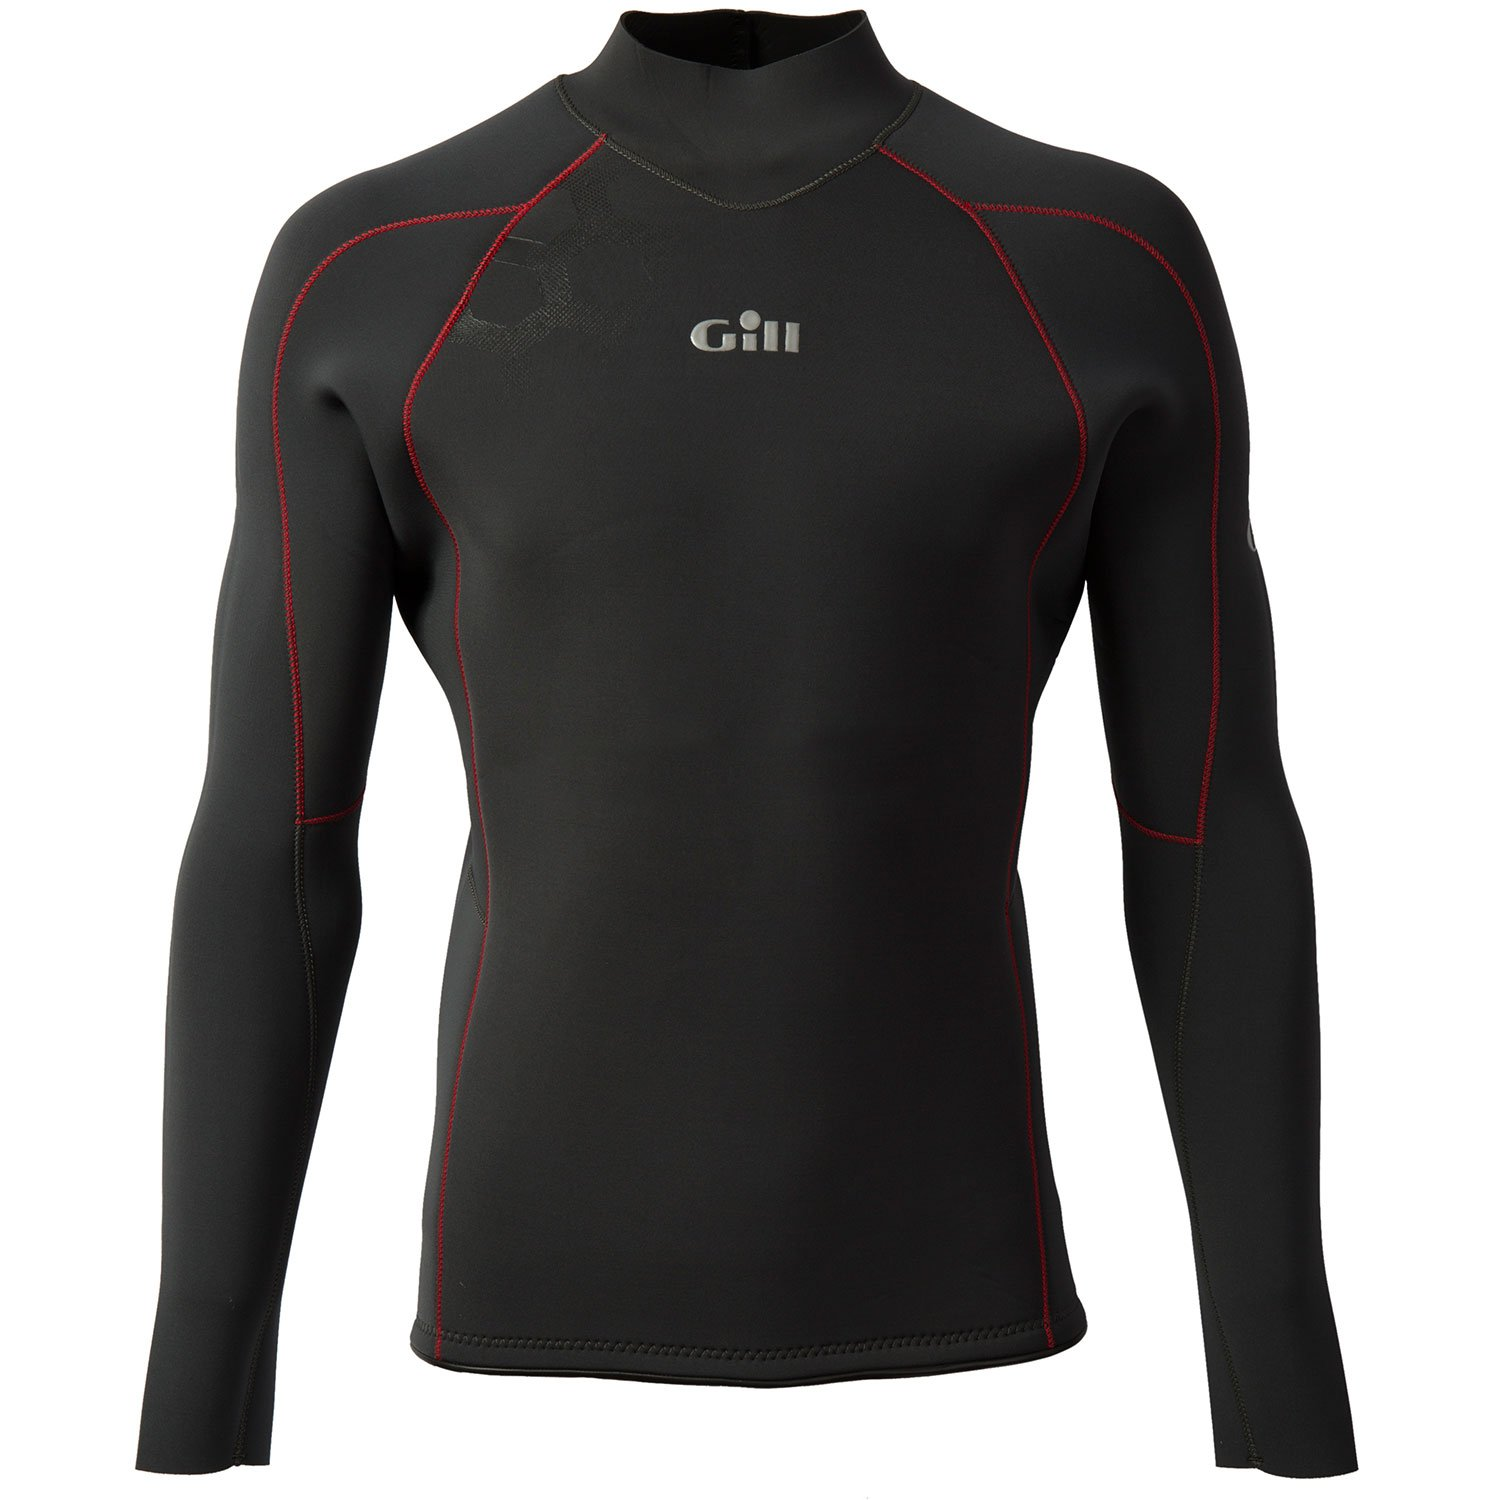 Gill Race Firecell Wetsuit Top - Graphite XS